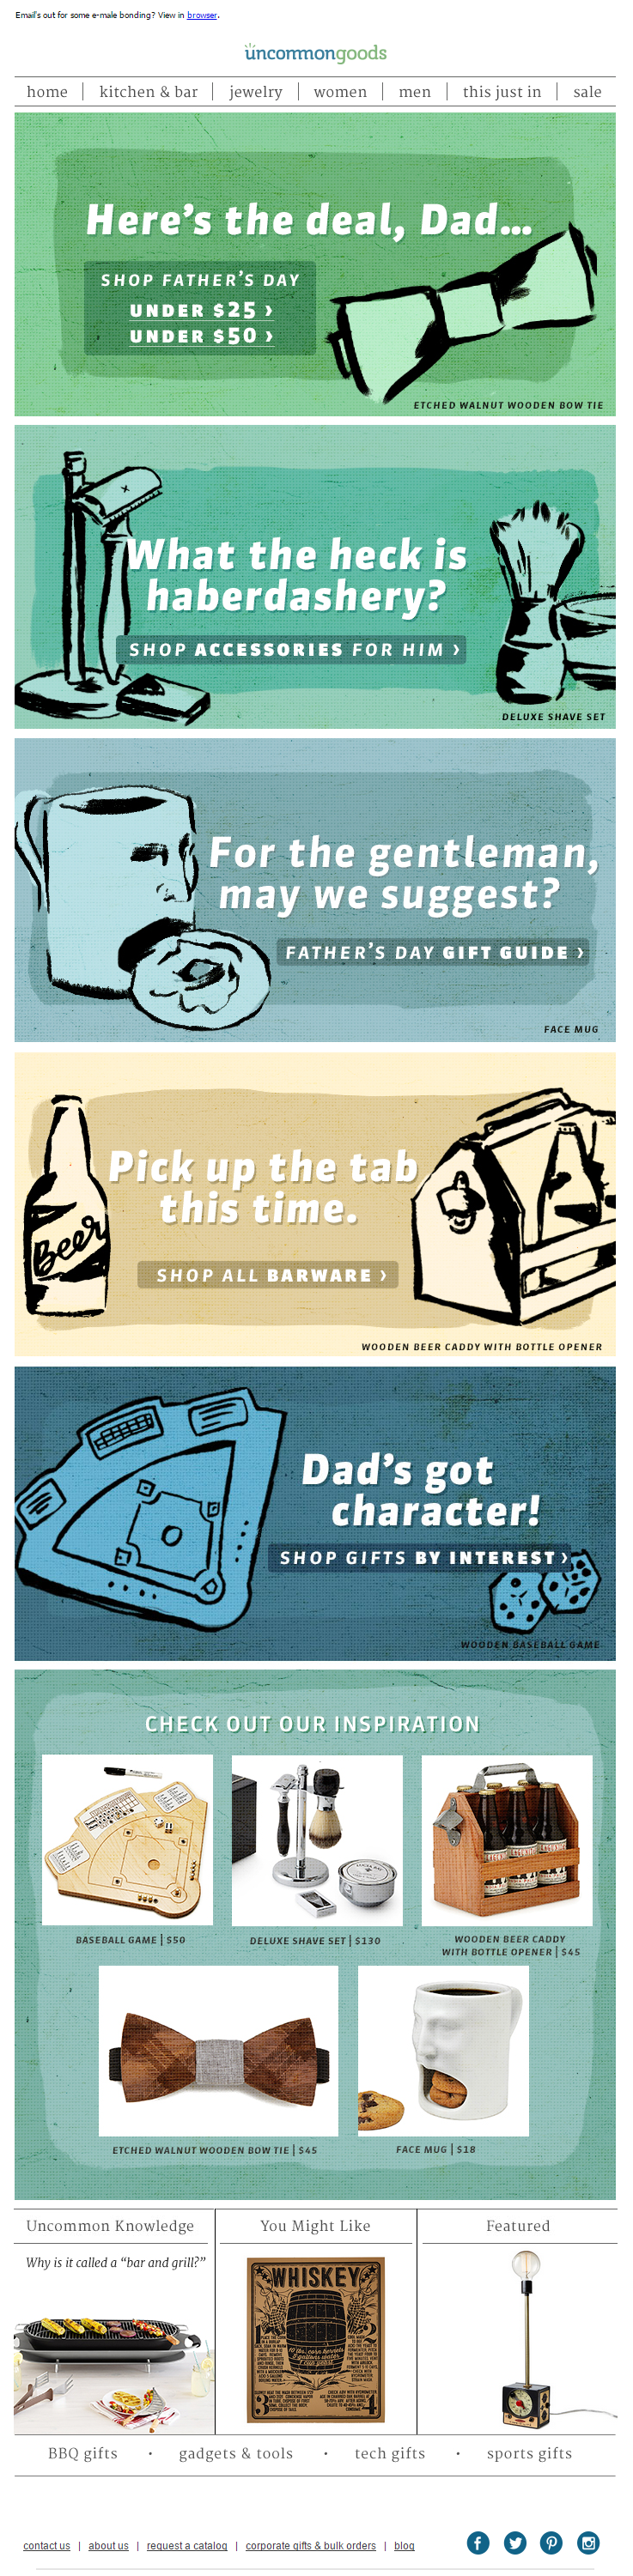 Uncommon Goods Father's Day email 2015